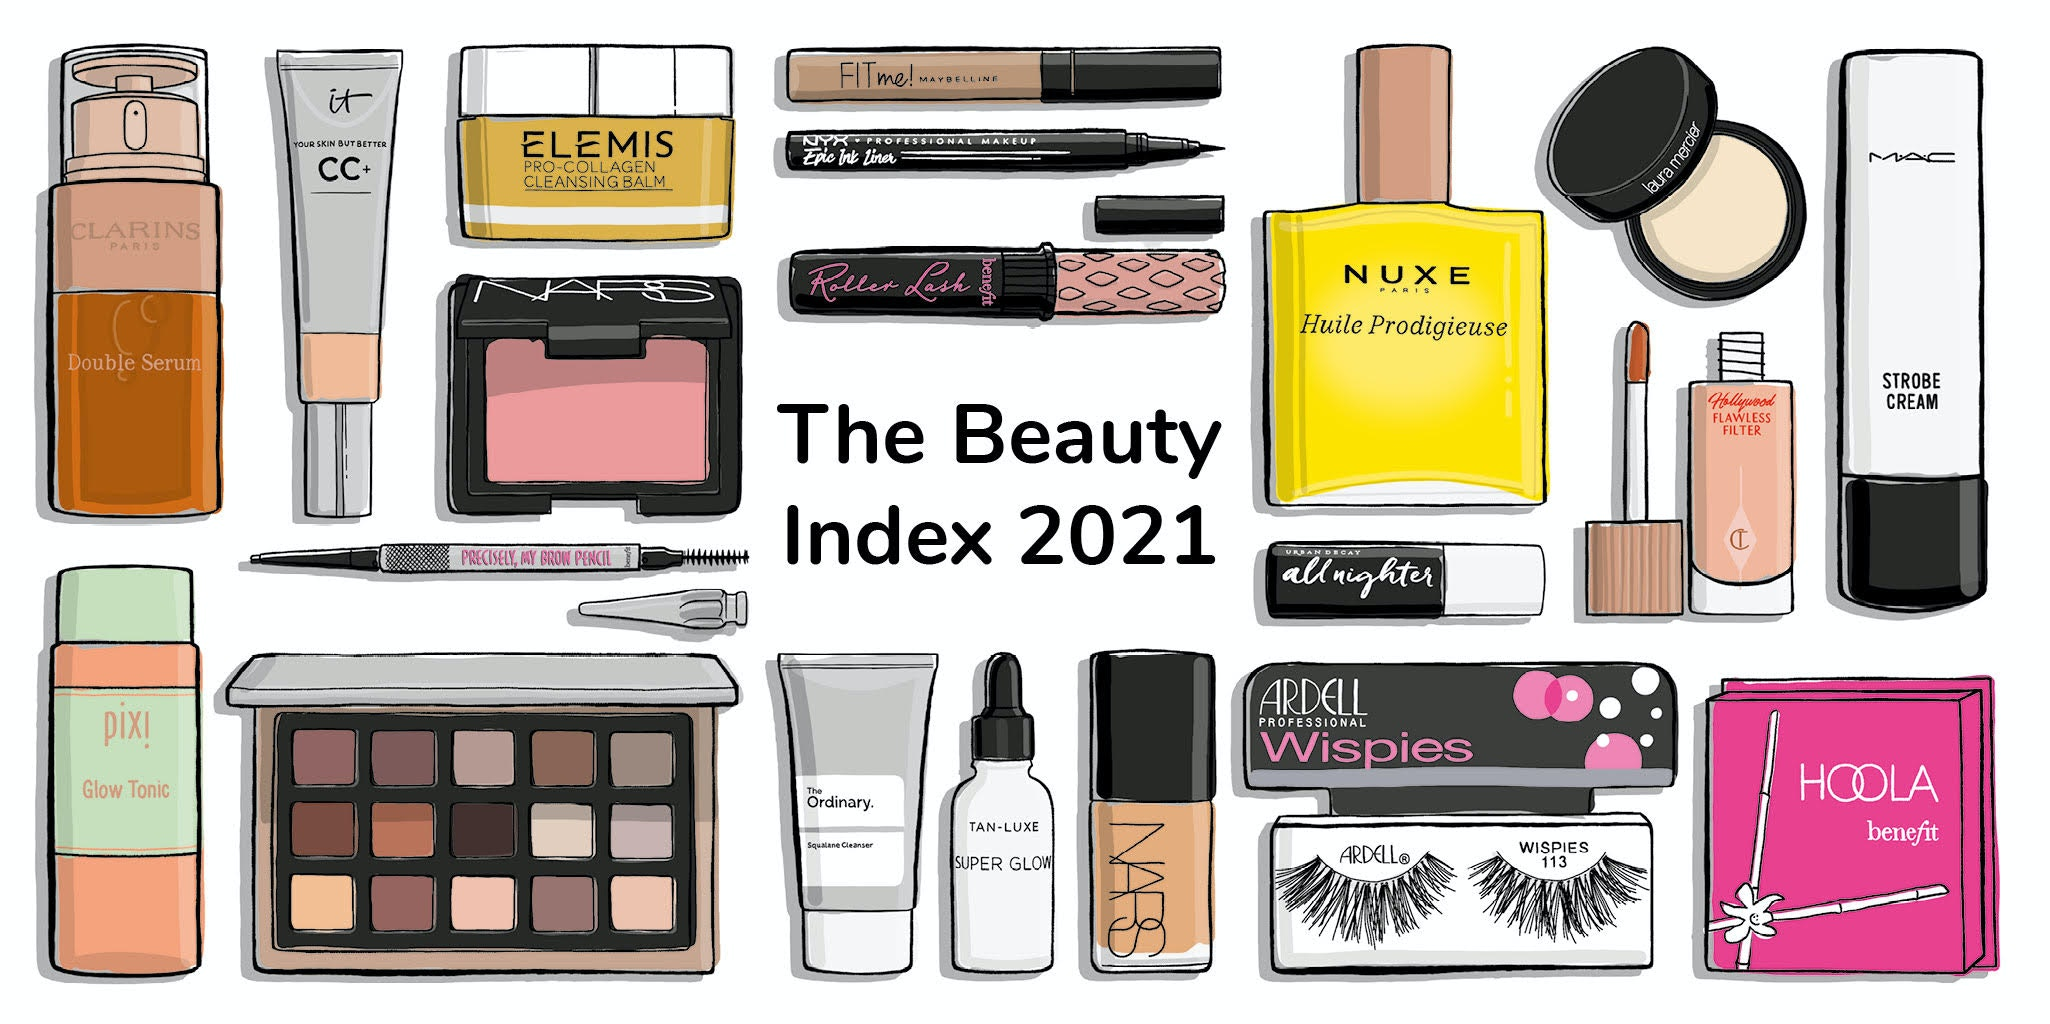 An illustration of different beauty products.